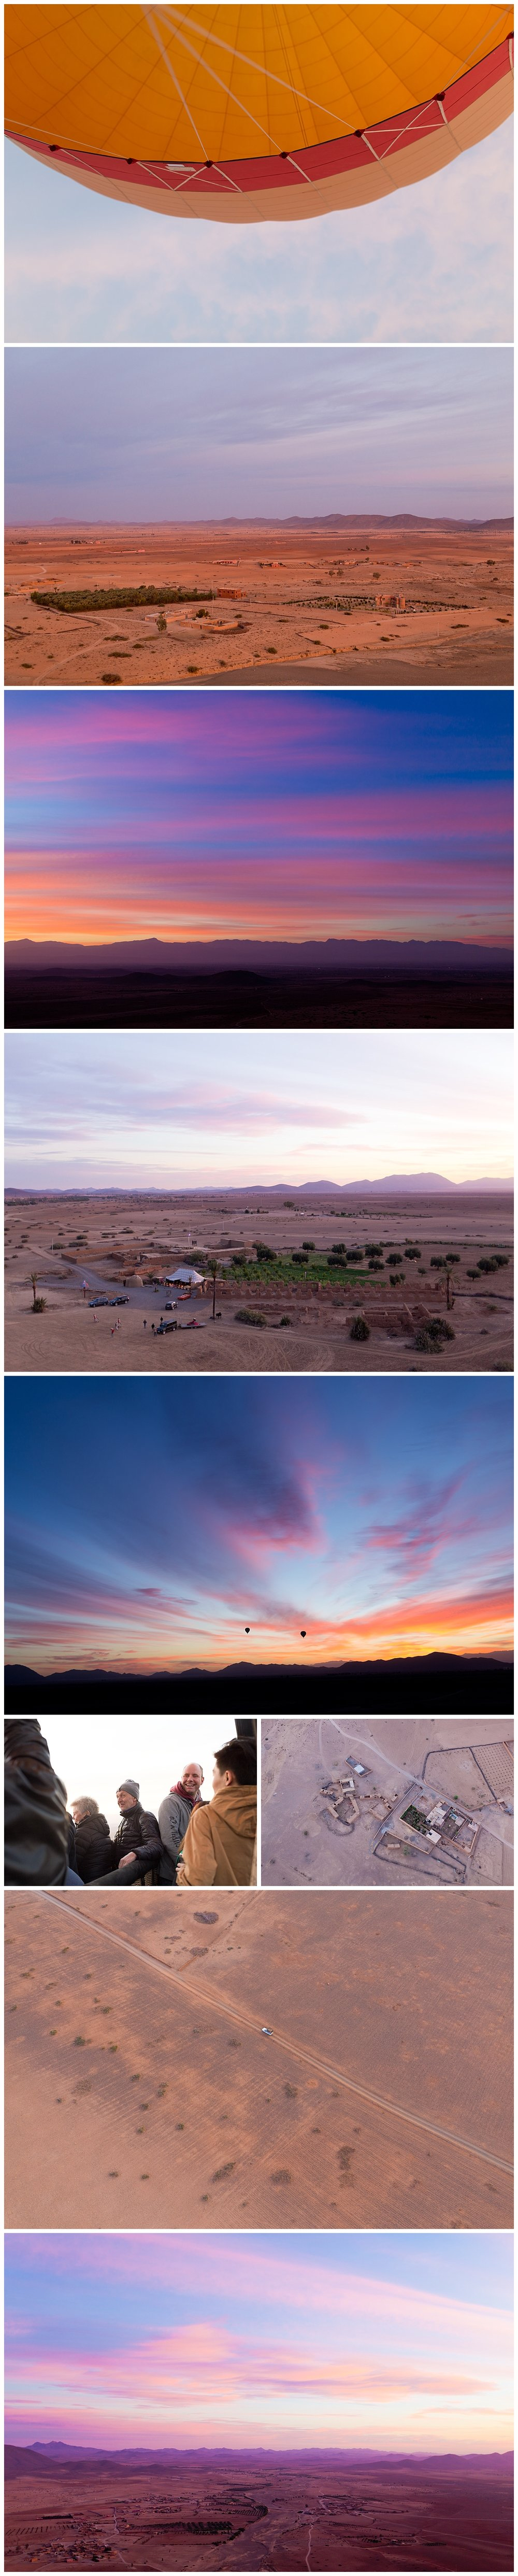 beautiful Sahara desert sunrise view from hot air balloon - Morocco travel blog